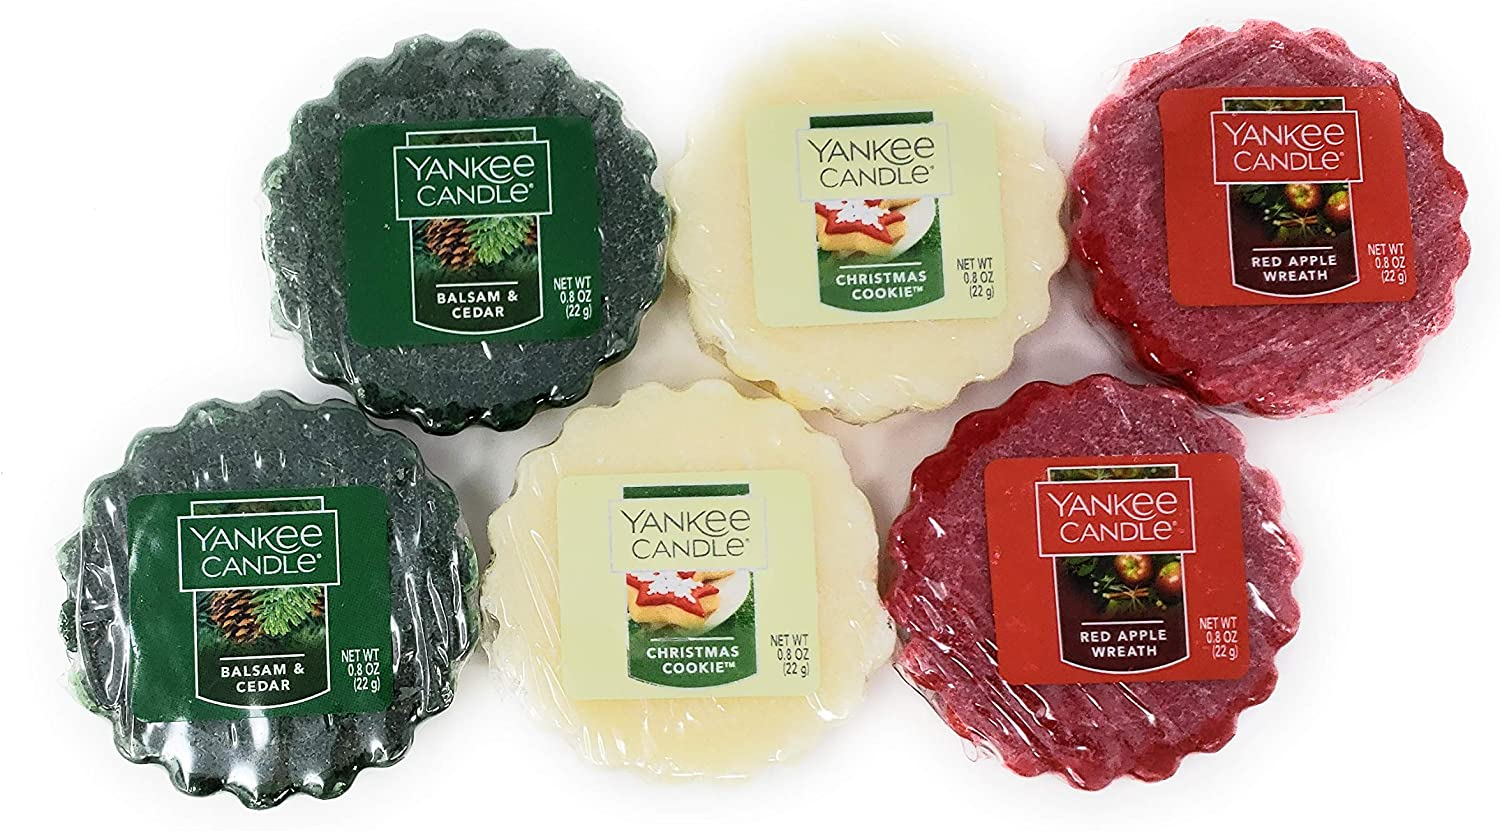 Yankee Candle Holiday Scented Tarts Wax Melts - Balsam & Cedar, Christmas Cookie, Red Apple Wreath - Bundle Set of 6